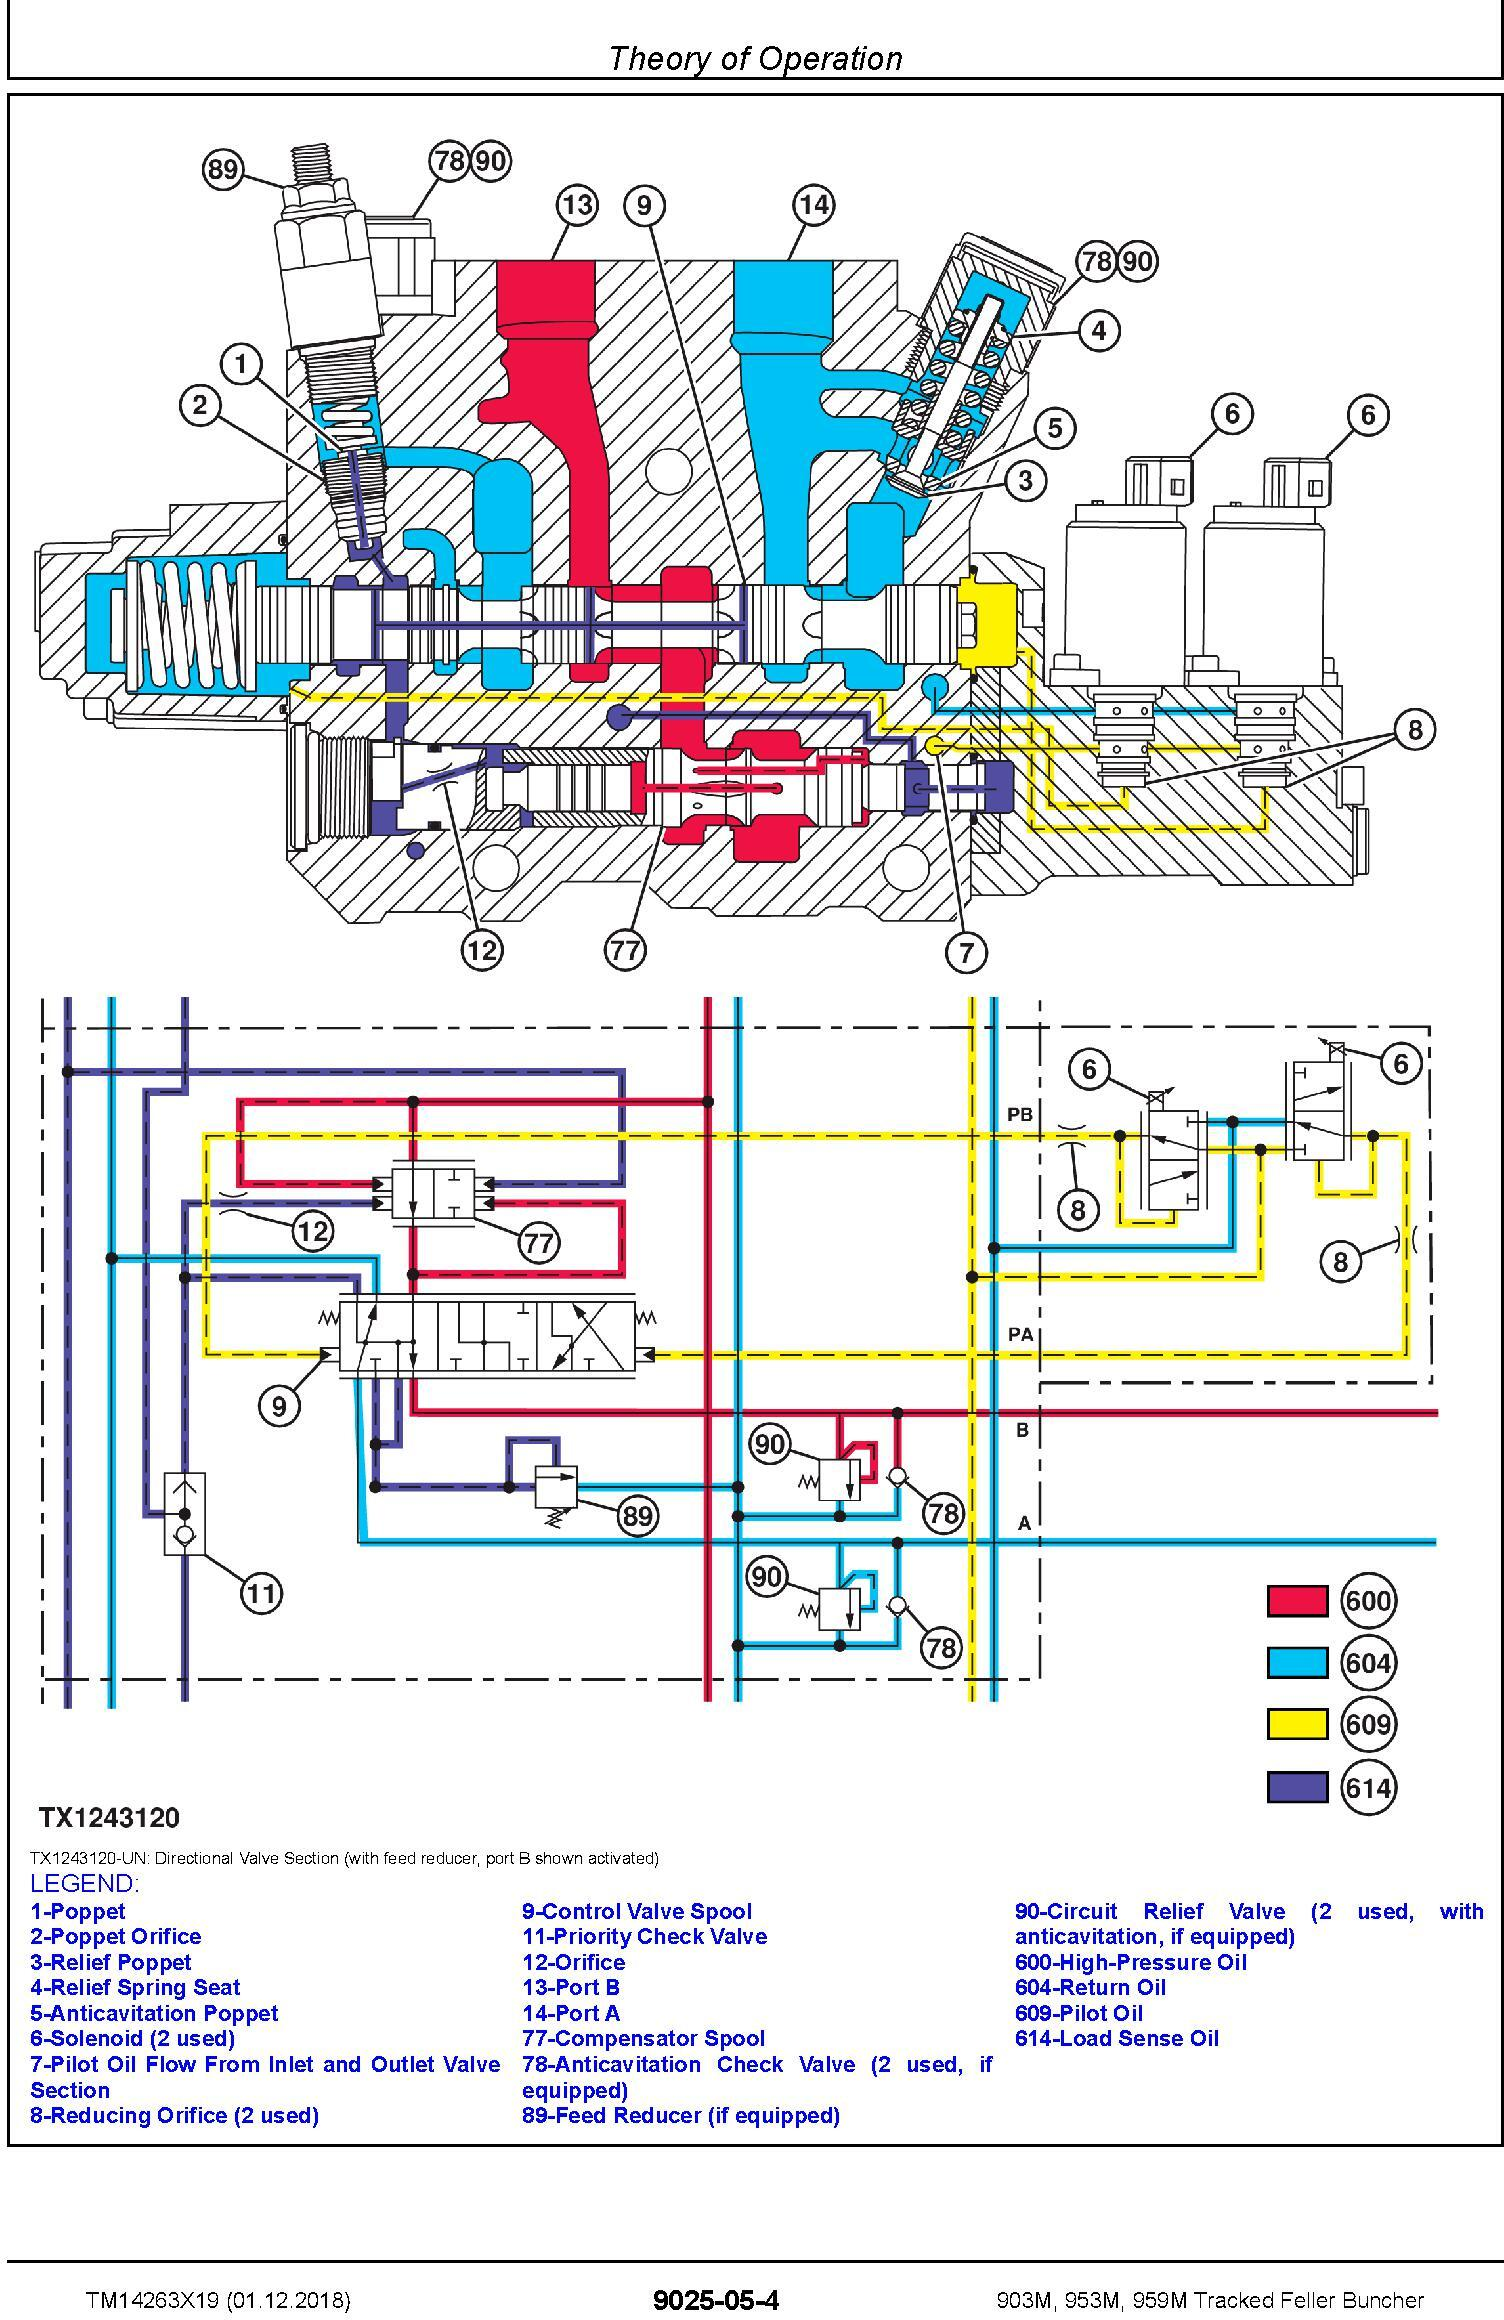 John Deere 903M,953M,959M (SN.C317982-,D317982-) Feller Buncher Diagnostic Service Manual TM14263X19 - 2